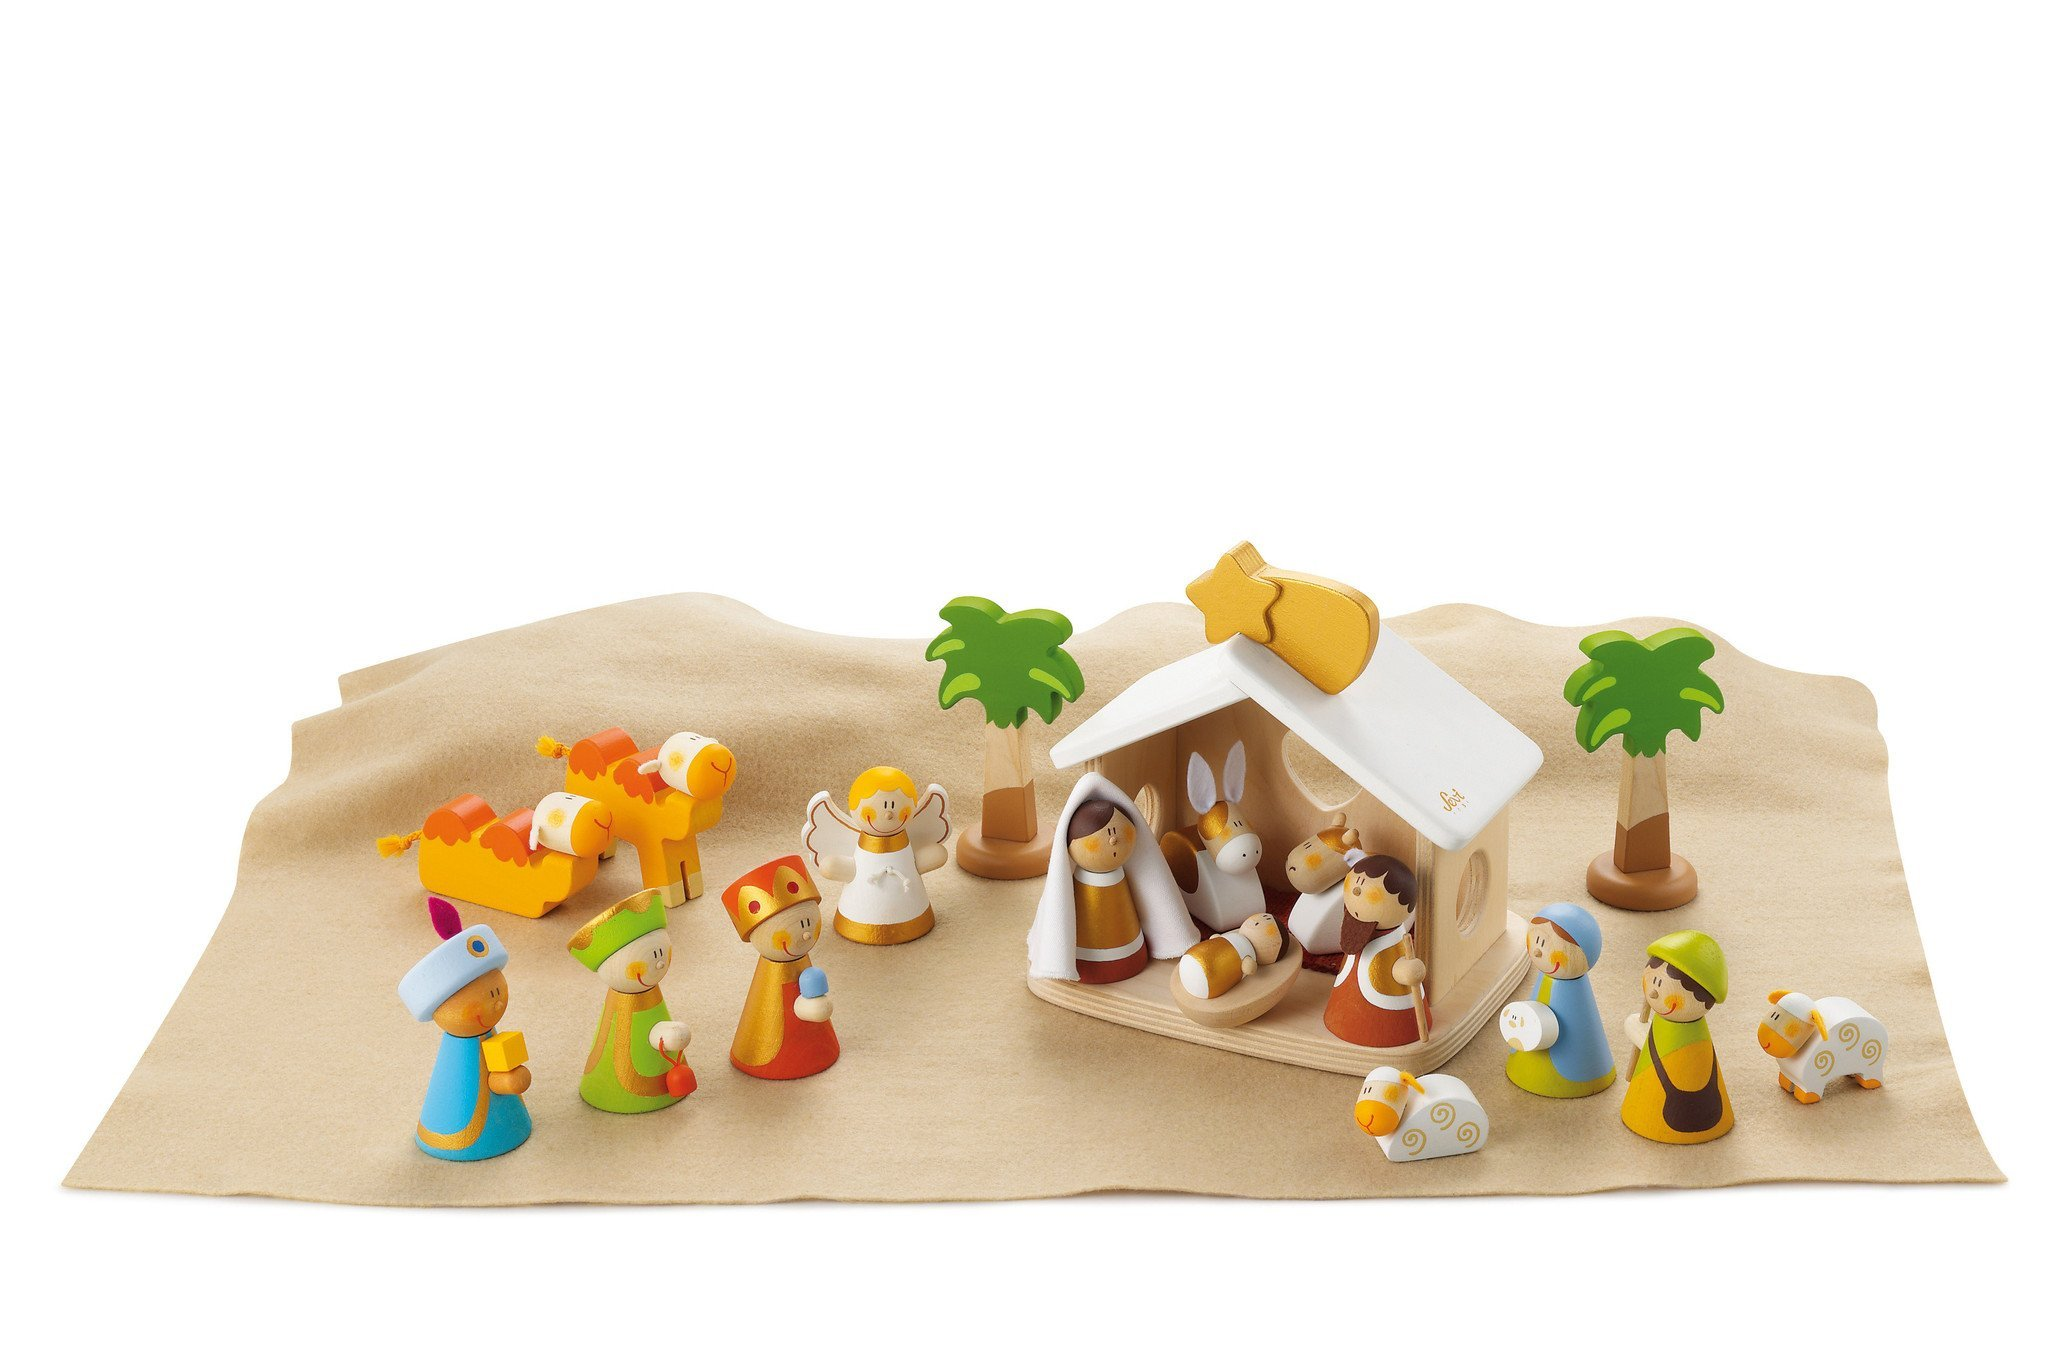 Sevi 1831 wooden toy - Christmas Decorations - Set Crib Complete - (code 82257) by Sevi